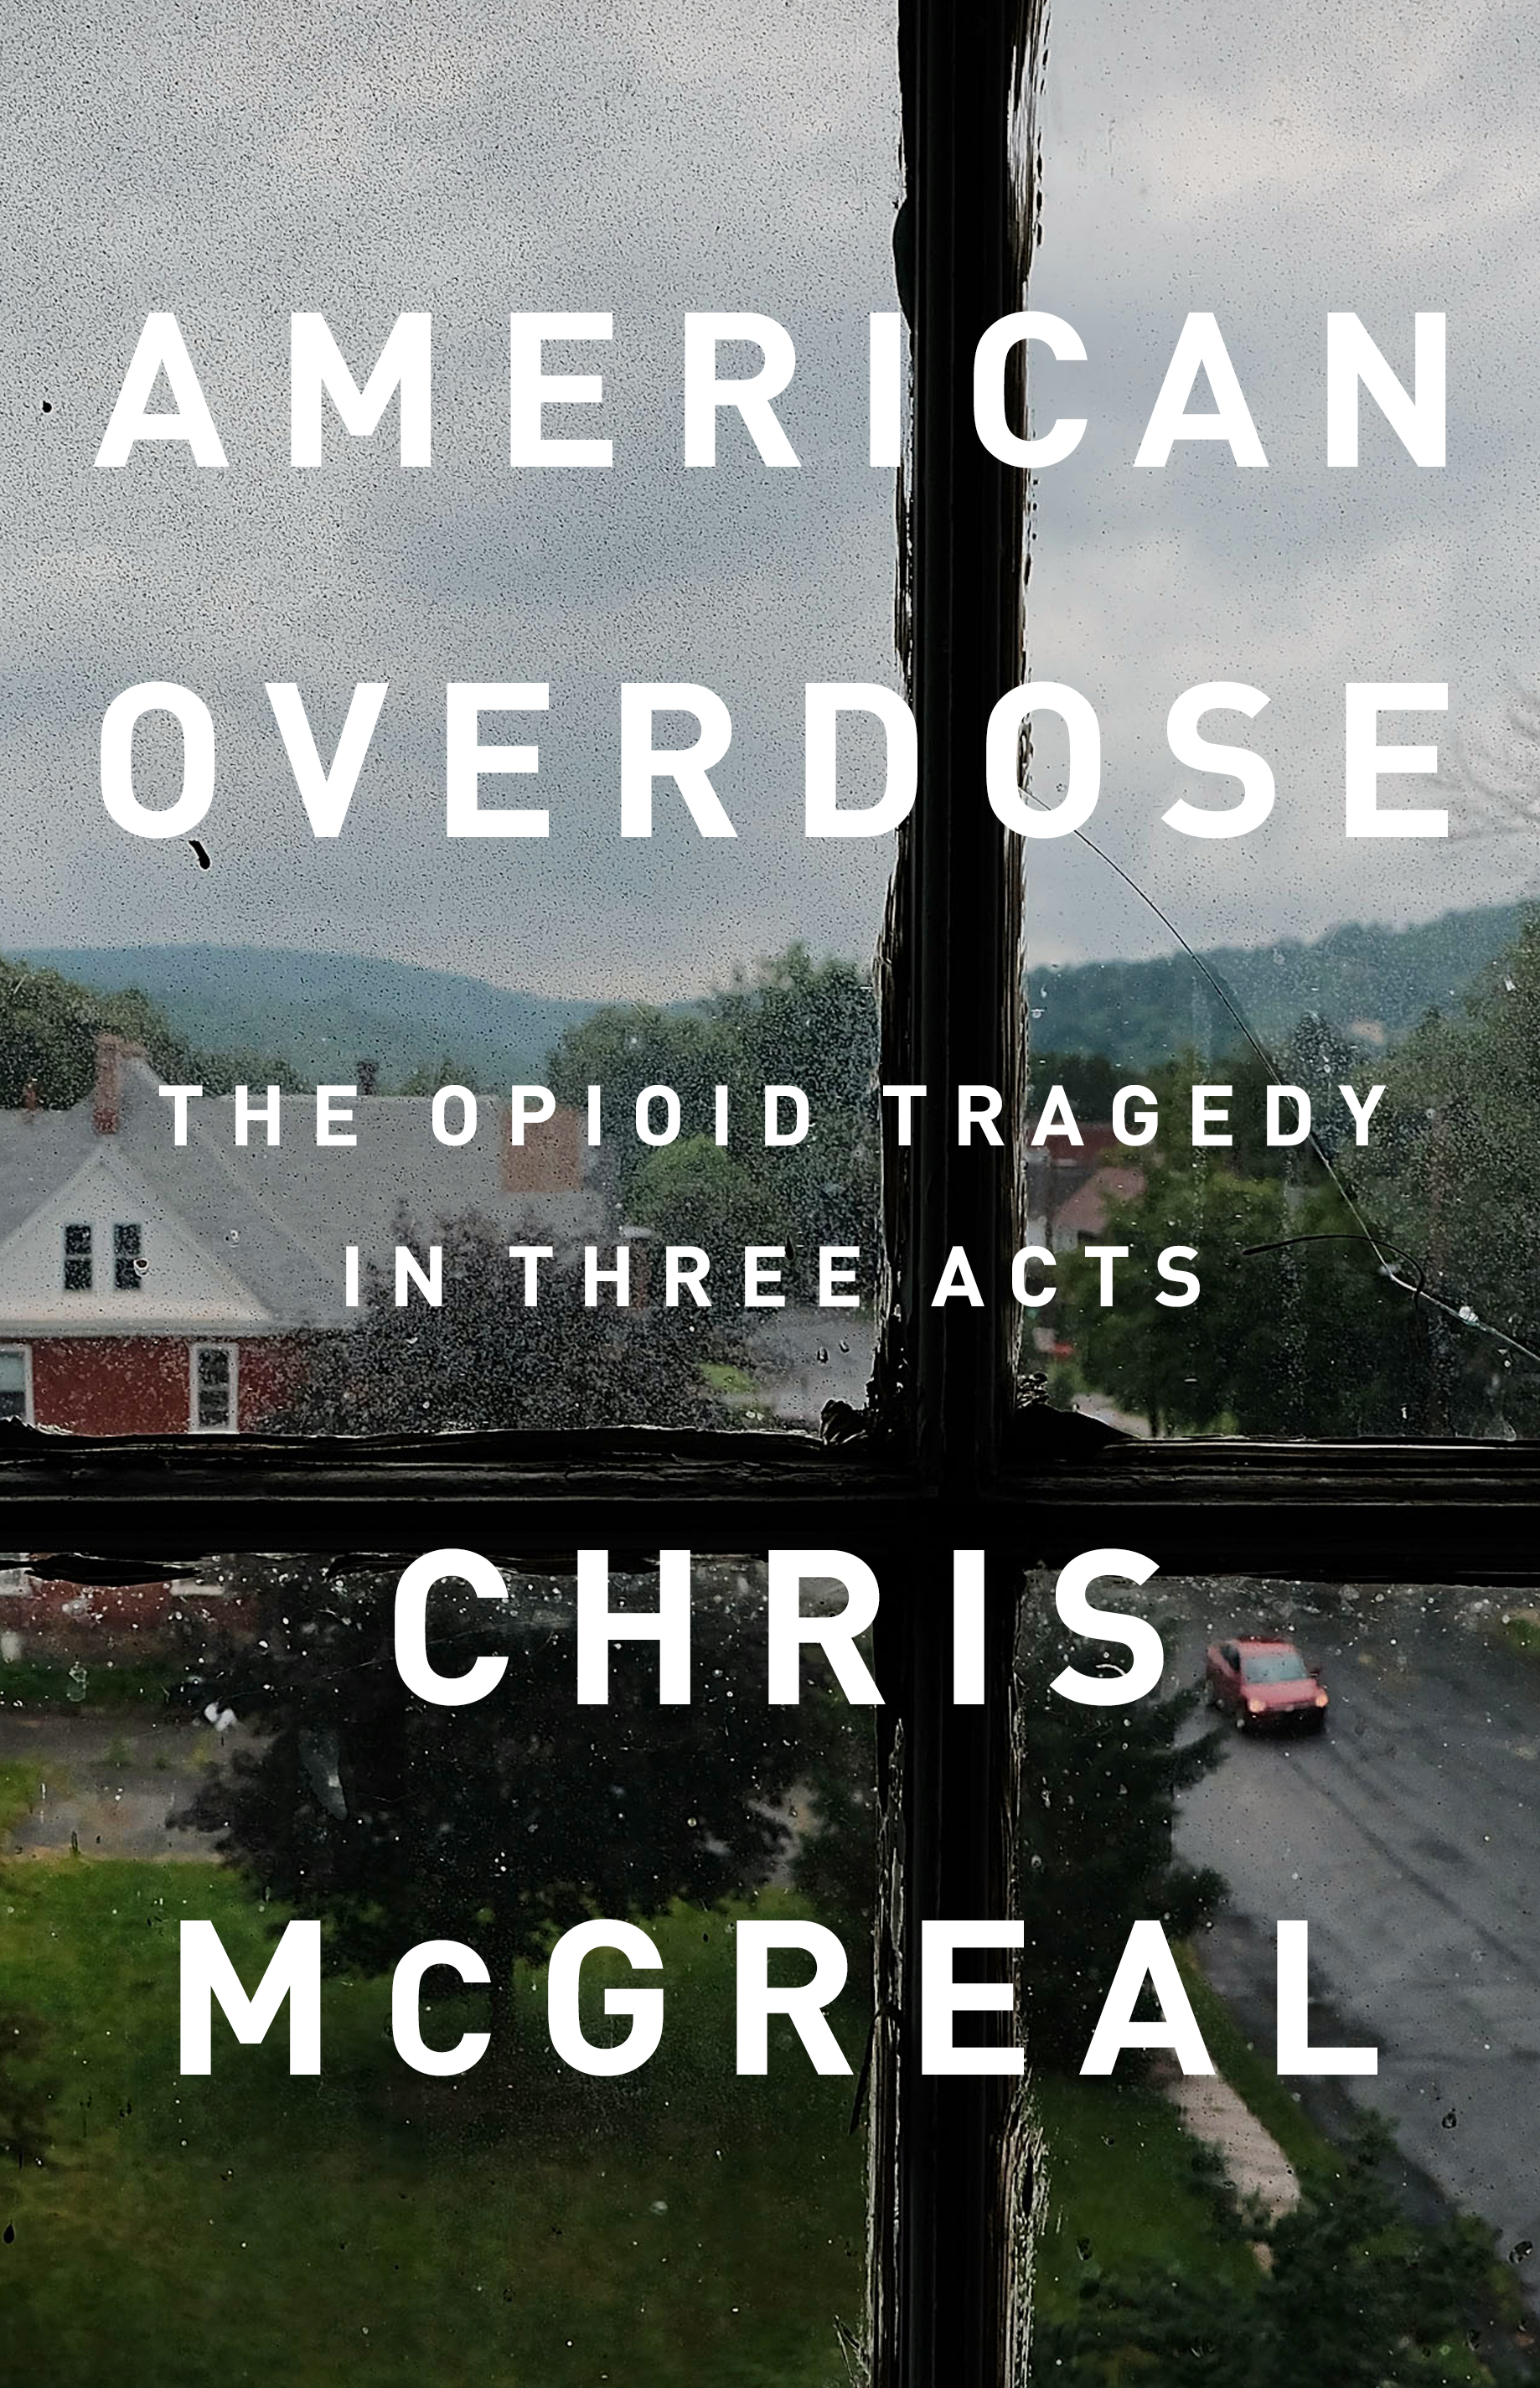 Book Launch: American Overdose: The Opioid Tragedy in Three Acts by Chris McGreal — in conversation w/ Philip Gourevitch